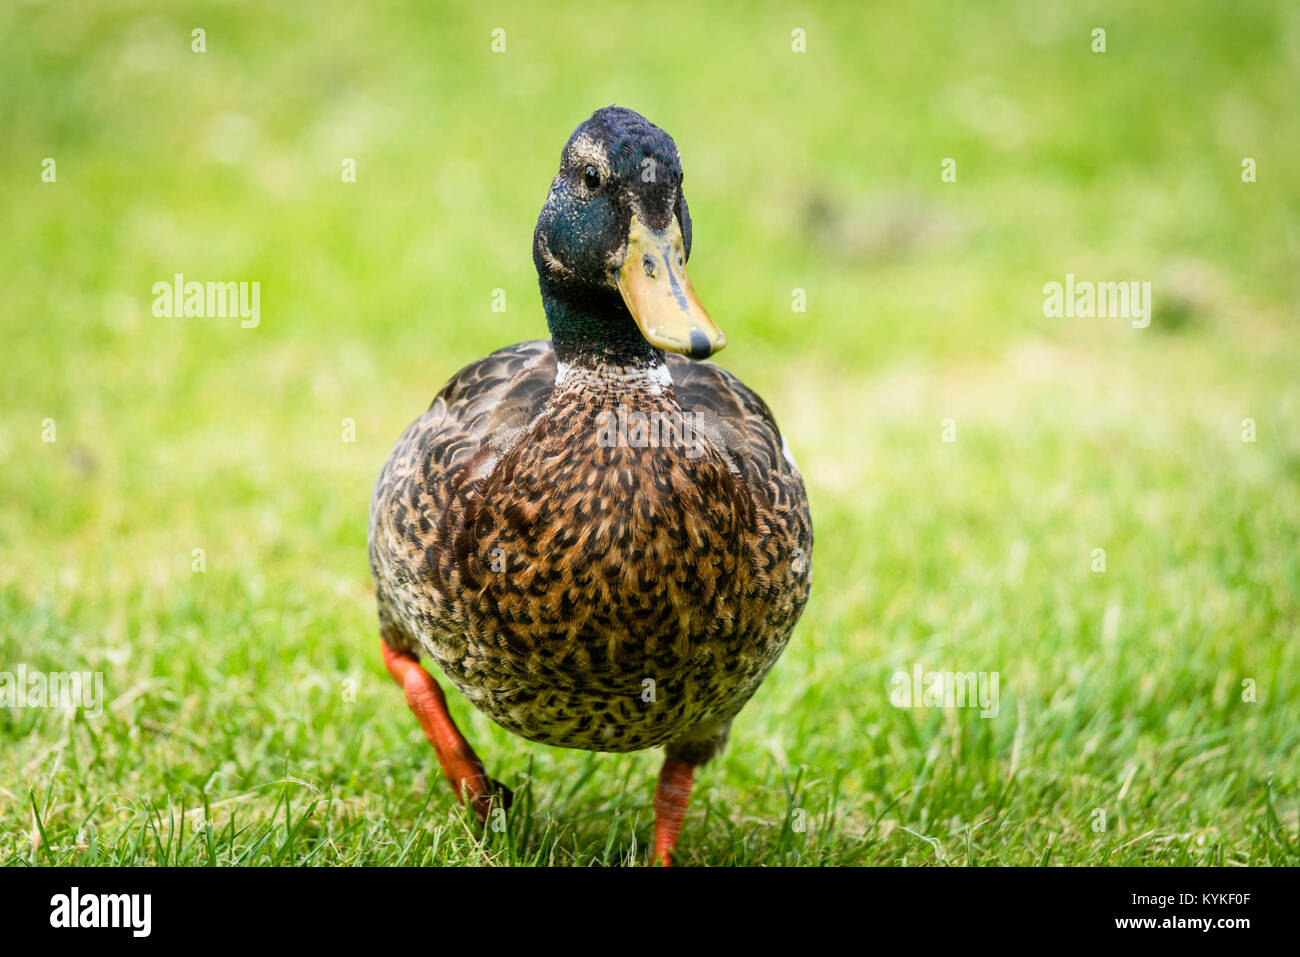 Big duck with brown chest walking on green grass in the springtime - Stock Image